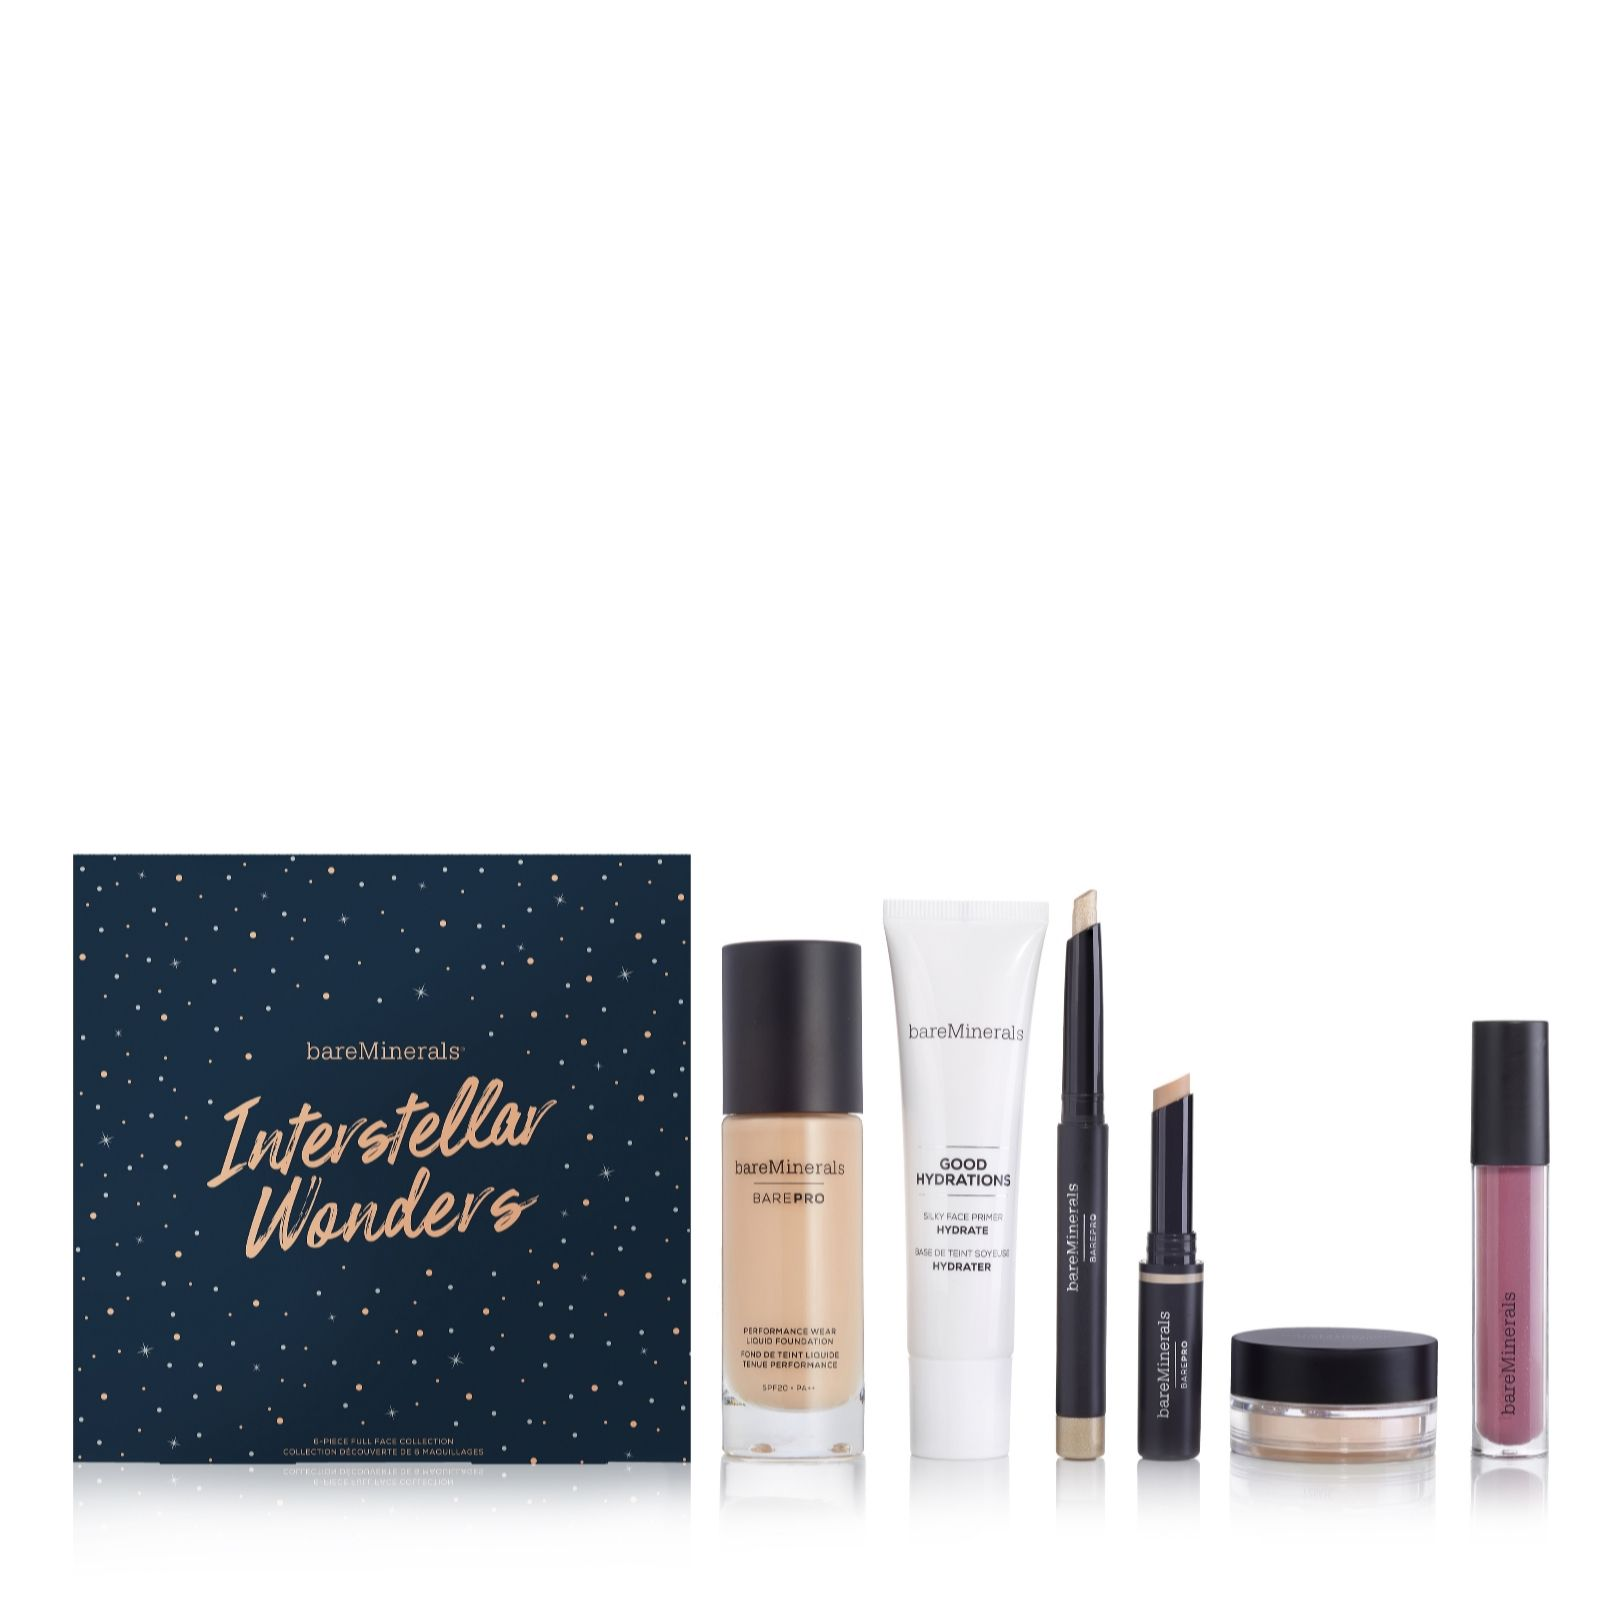 69410c663cc6 Bareminerals 6 Piece BarePro Interstellar Wonders Make-up Collection - QVC  UK